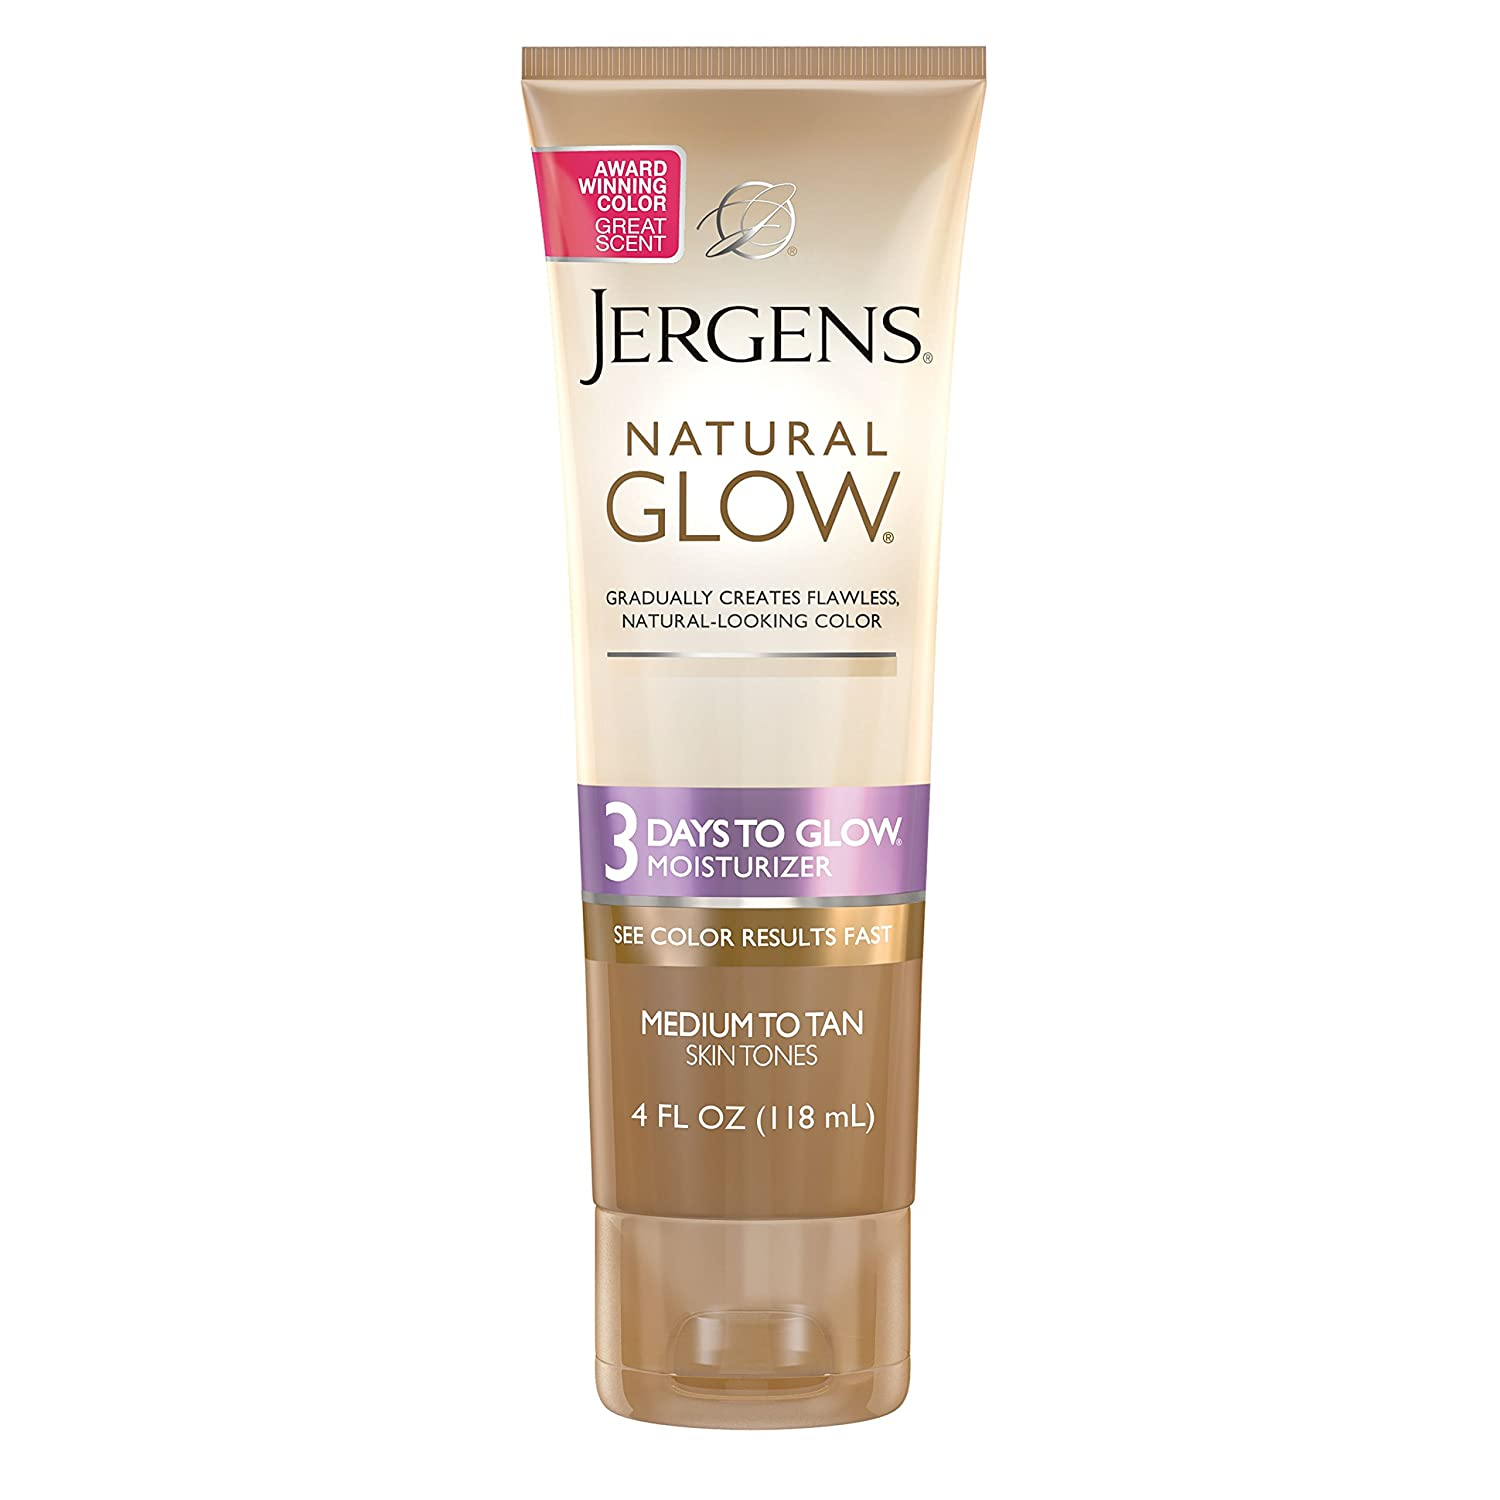 Jergens Natural Glow 3 Days to Glow Moisturizer, Medium to Tan Skin Tones, 4 Ounce KAO Brands boi-opp-klo-uyi6765